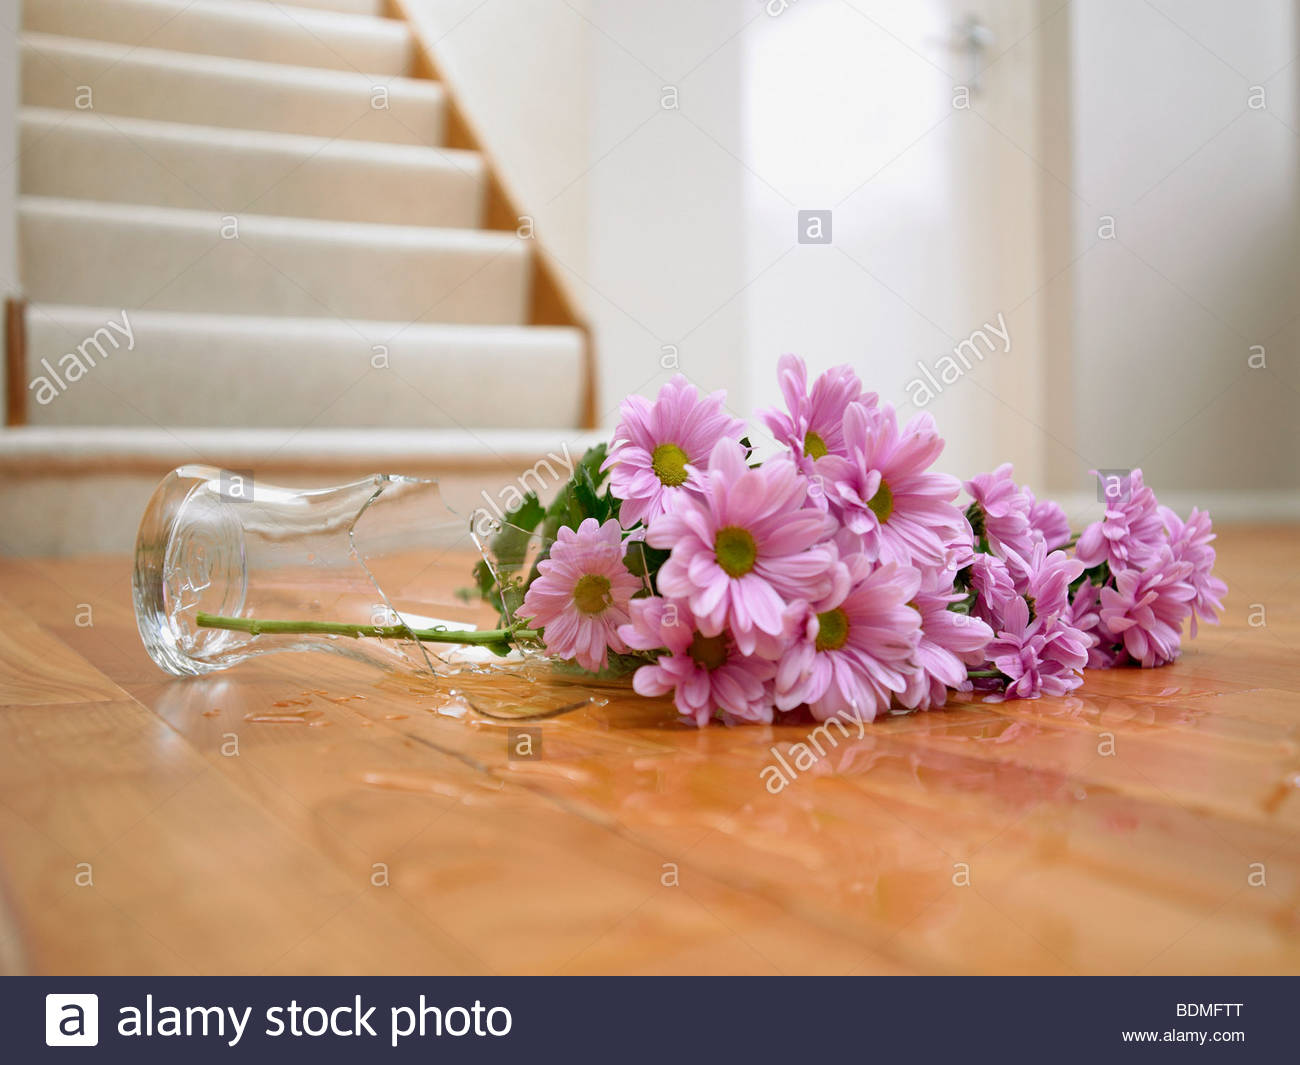 Broken Vase Of Flowers On Floor Stock Photo Royalty Free Image 25652392 Alamy